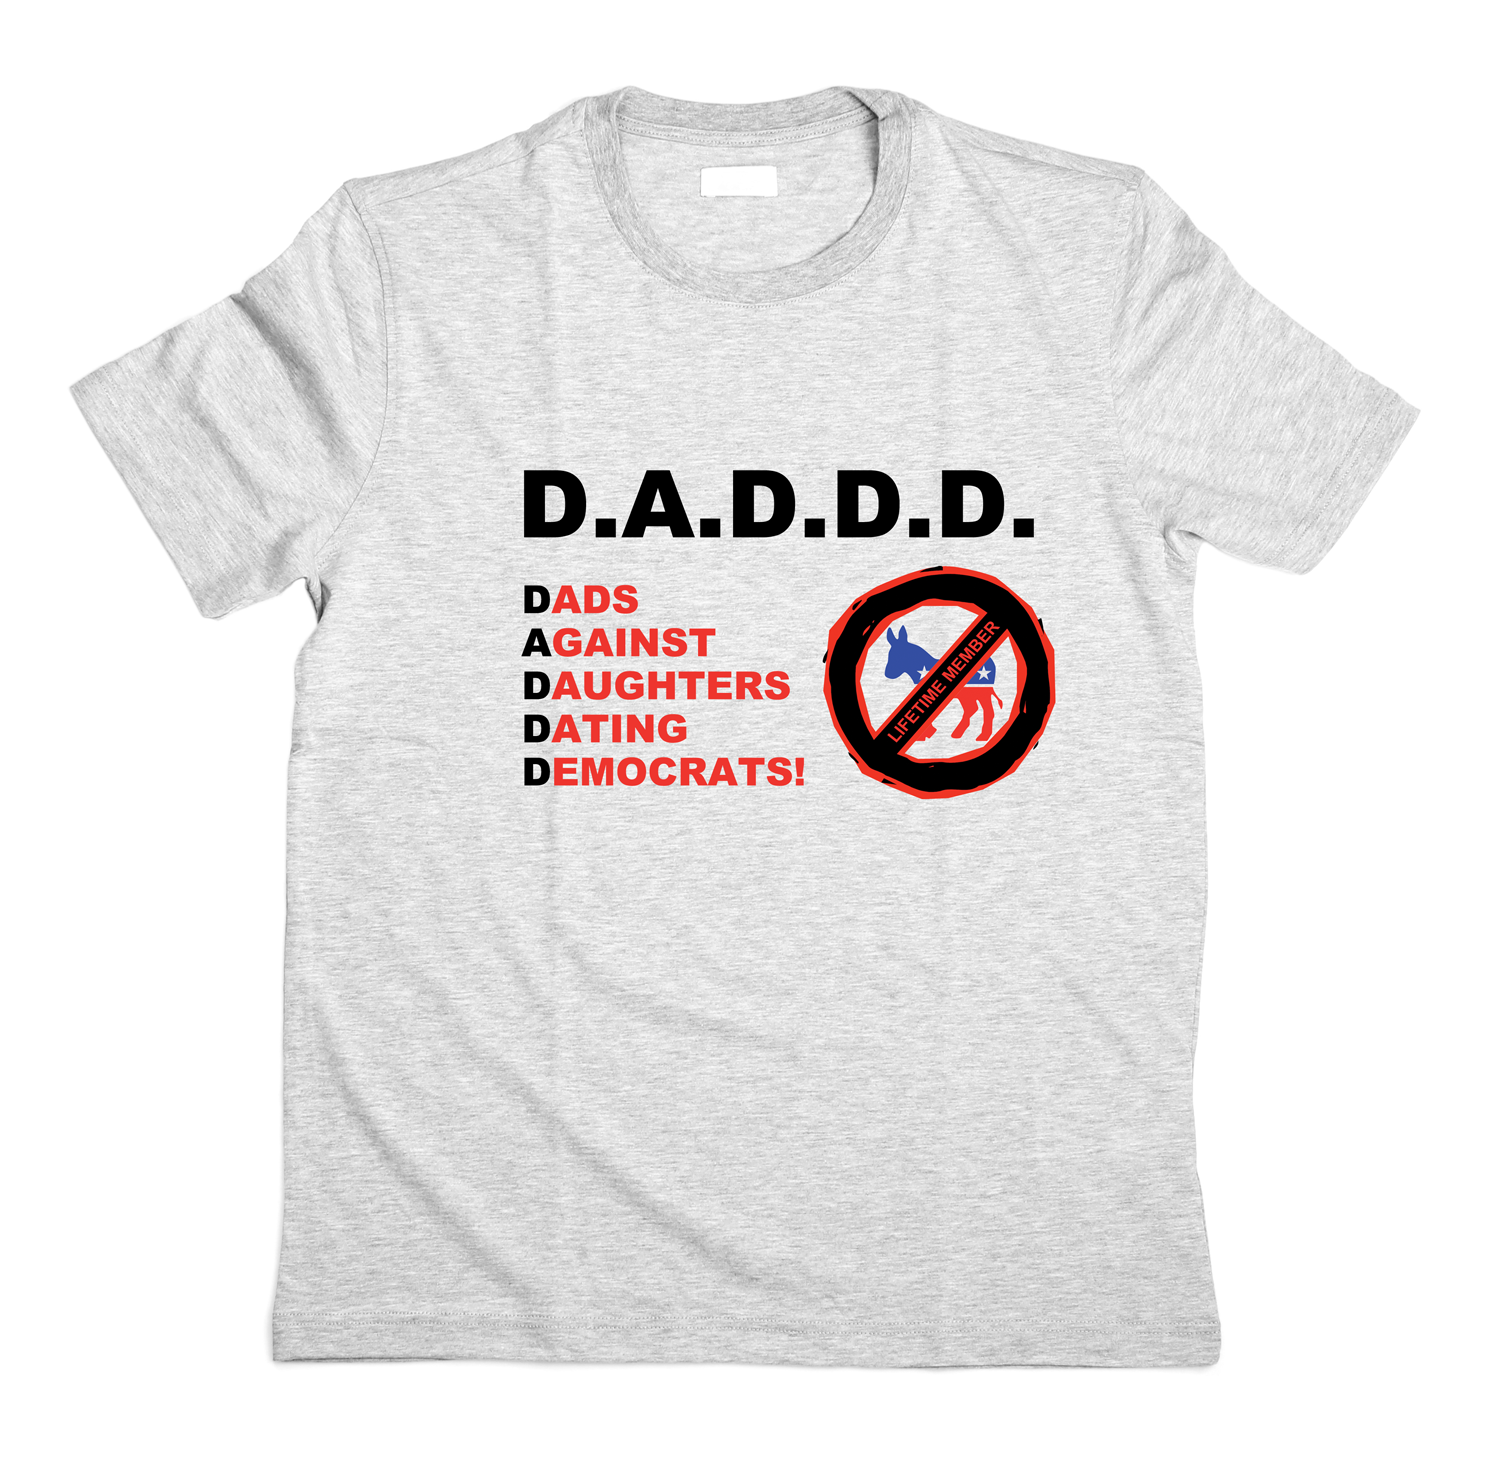 8c2d5756f89 D.A.D.D.D. Dads Against Daughters Dating Democrats T-Shirt (MADE IN TH -  Keep and Bear Store